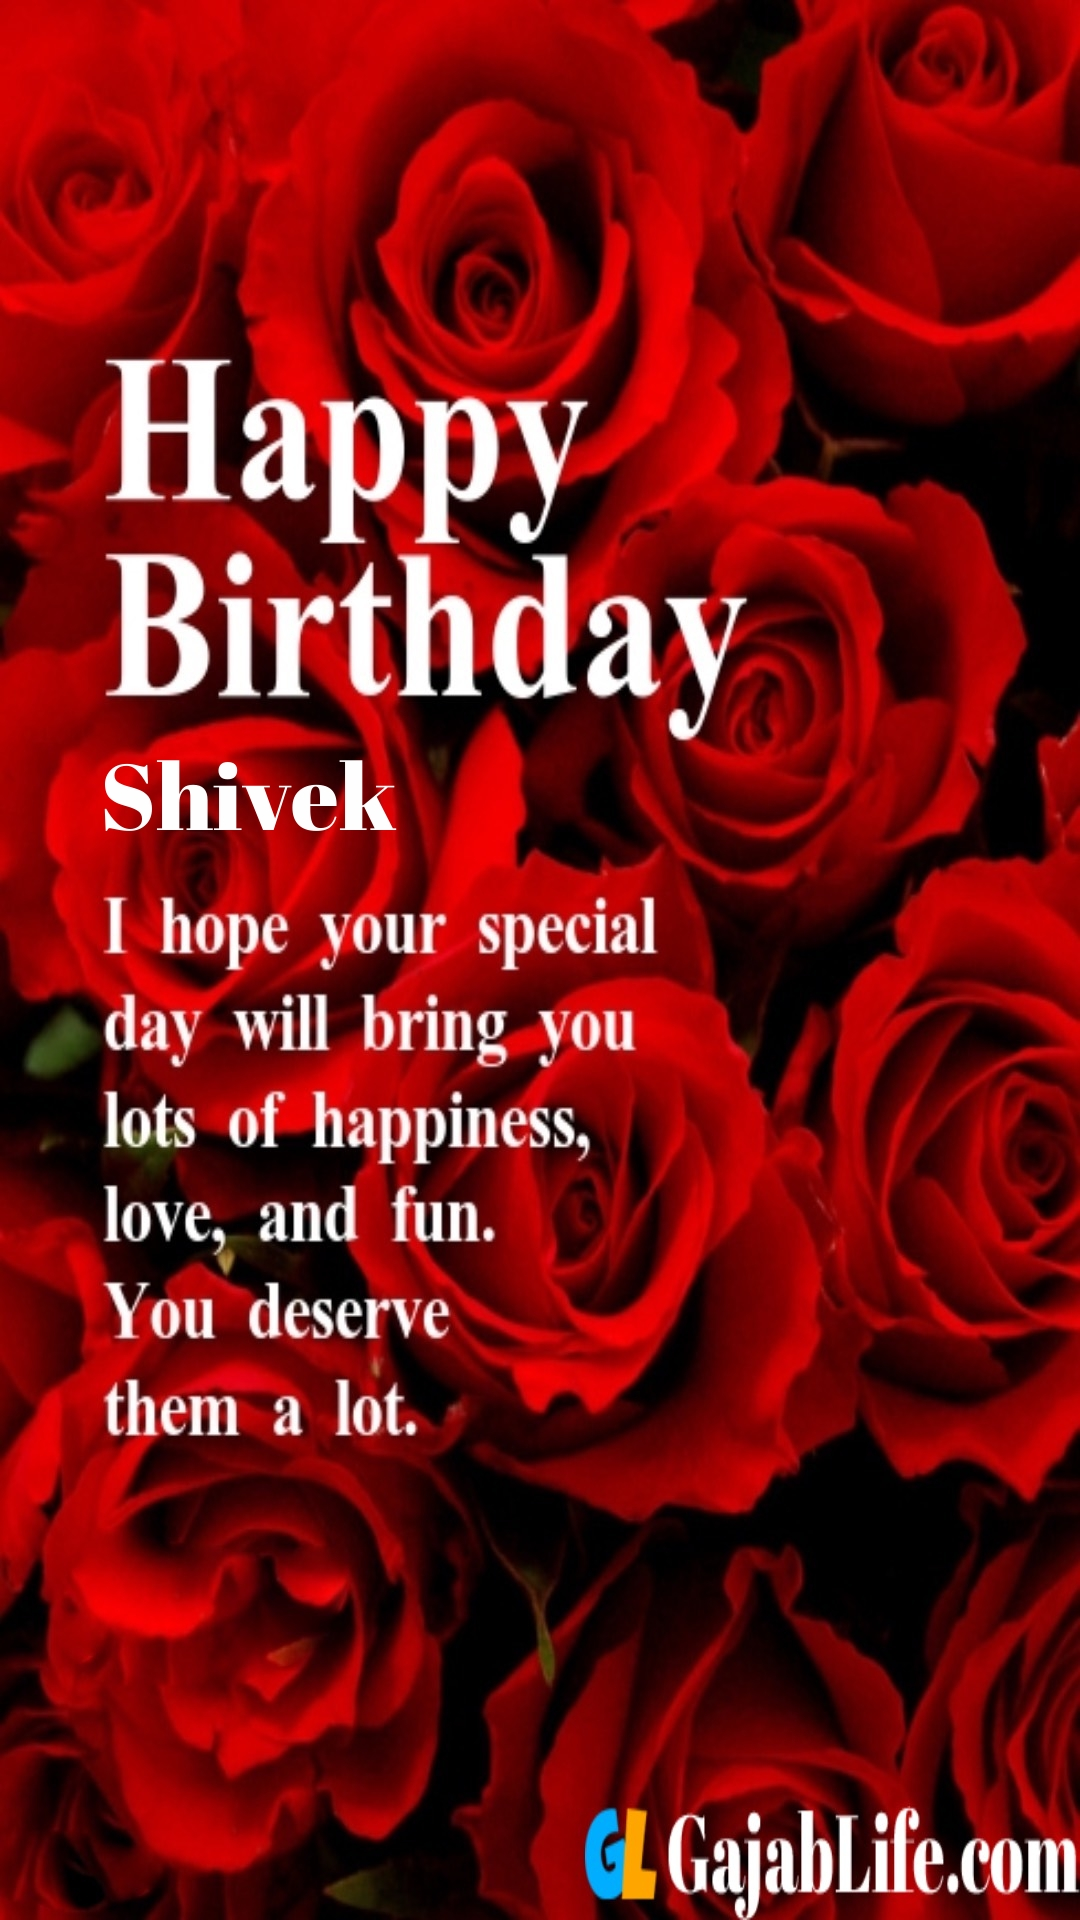 Shivek birthday greeting card with rose & love